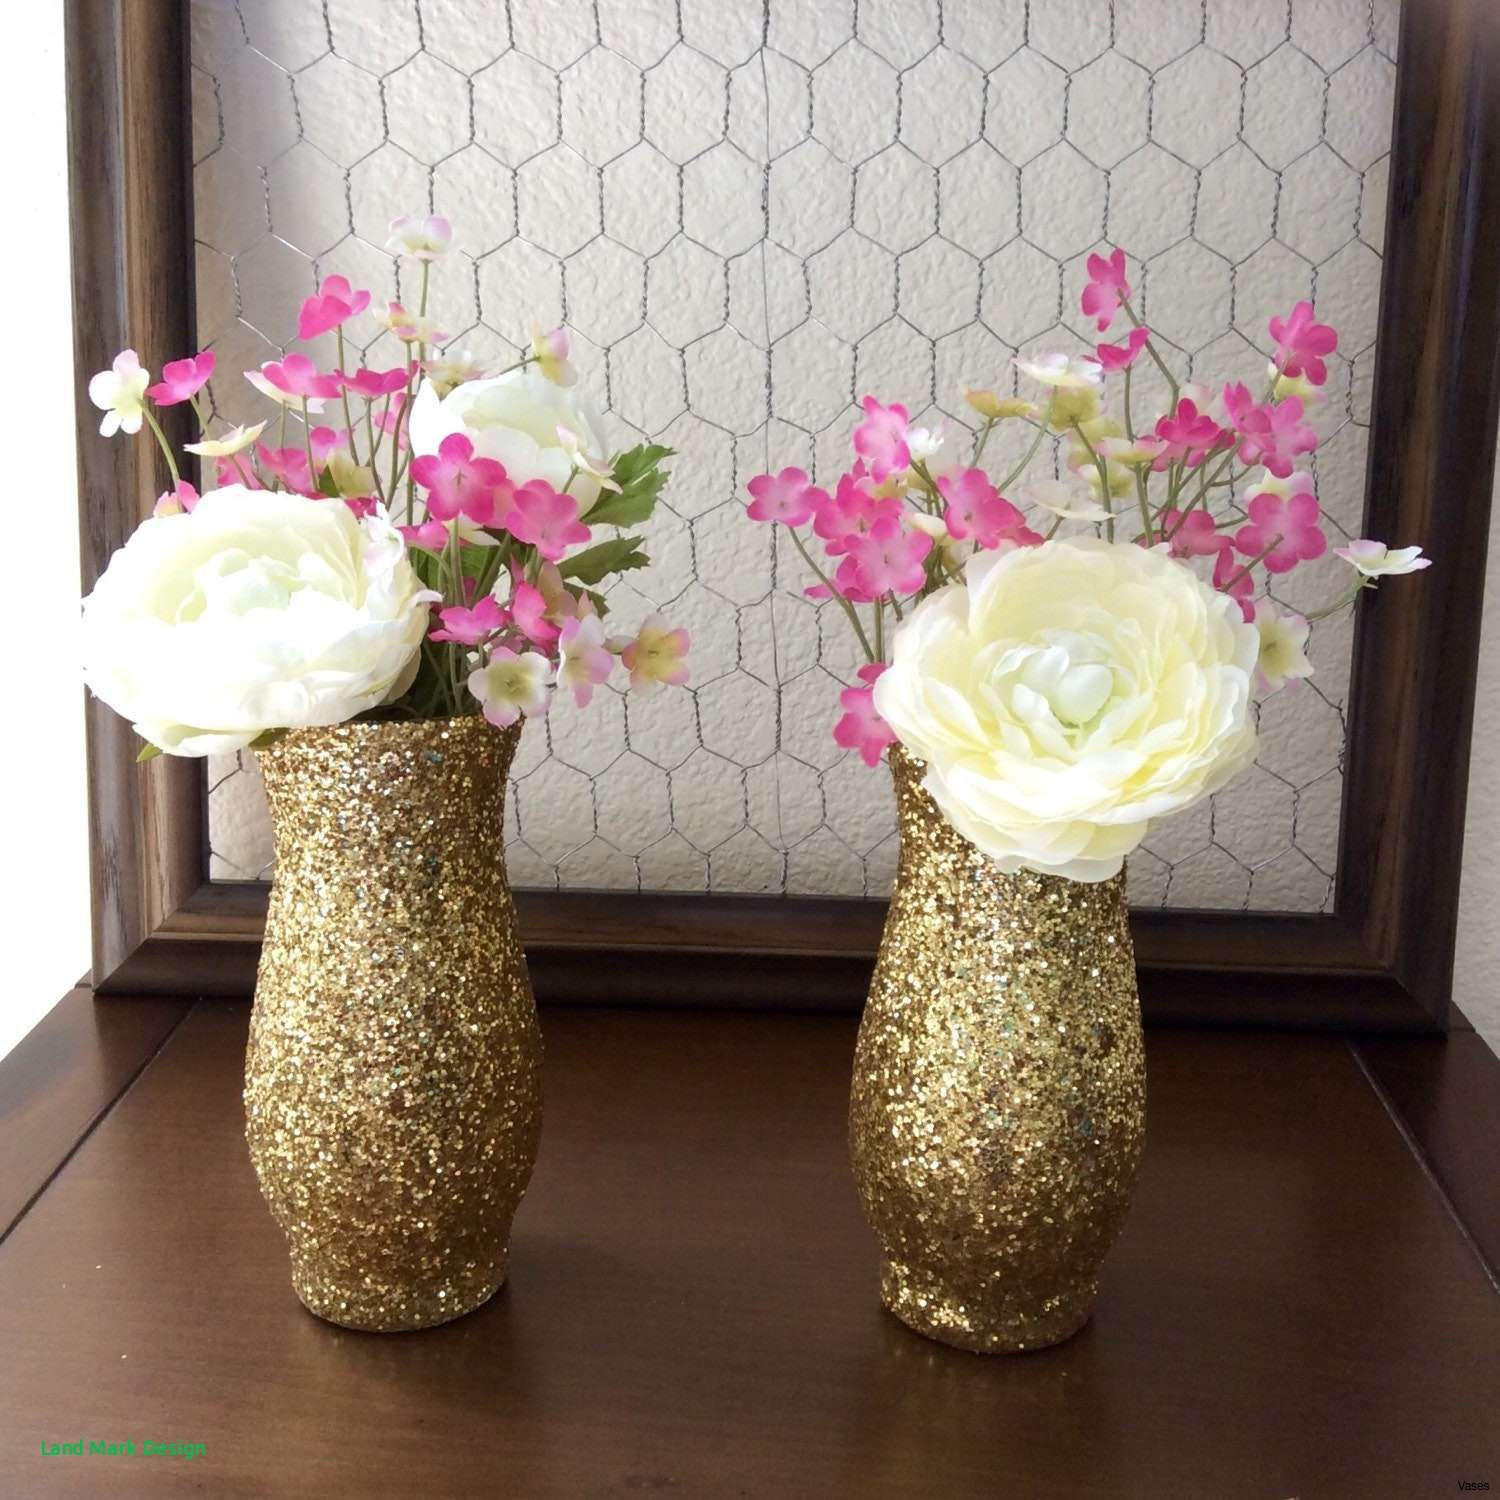 Large Vase Set Of 19 Gold Flower Vases the Weekly World Inside Il Fullxfull 3b2bh Vases Gold Glitter Vase Set Of 10 Wedding by I 8d Via Ydeevnepropecia Com